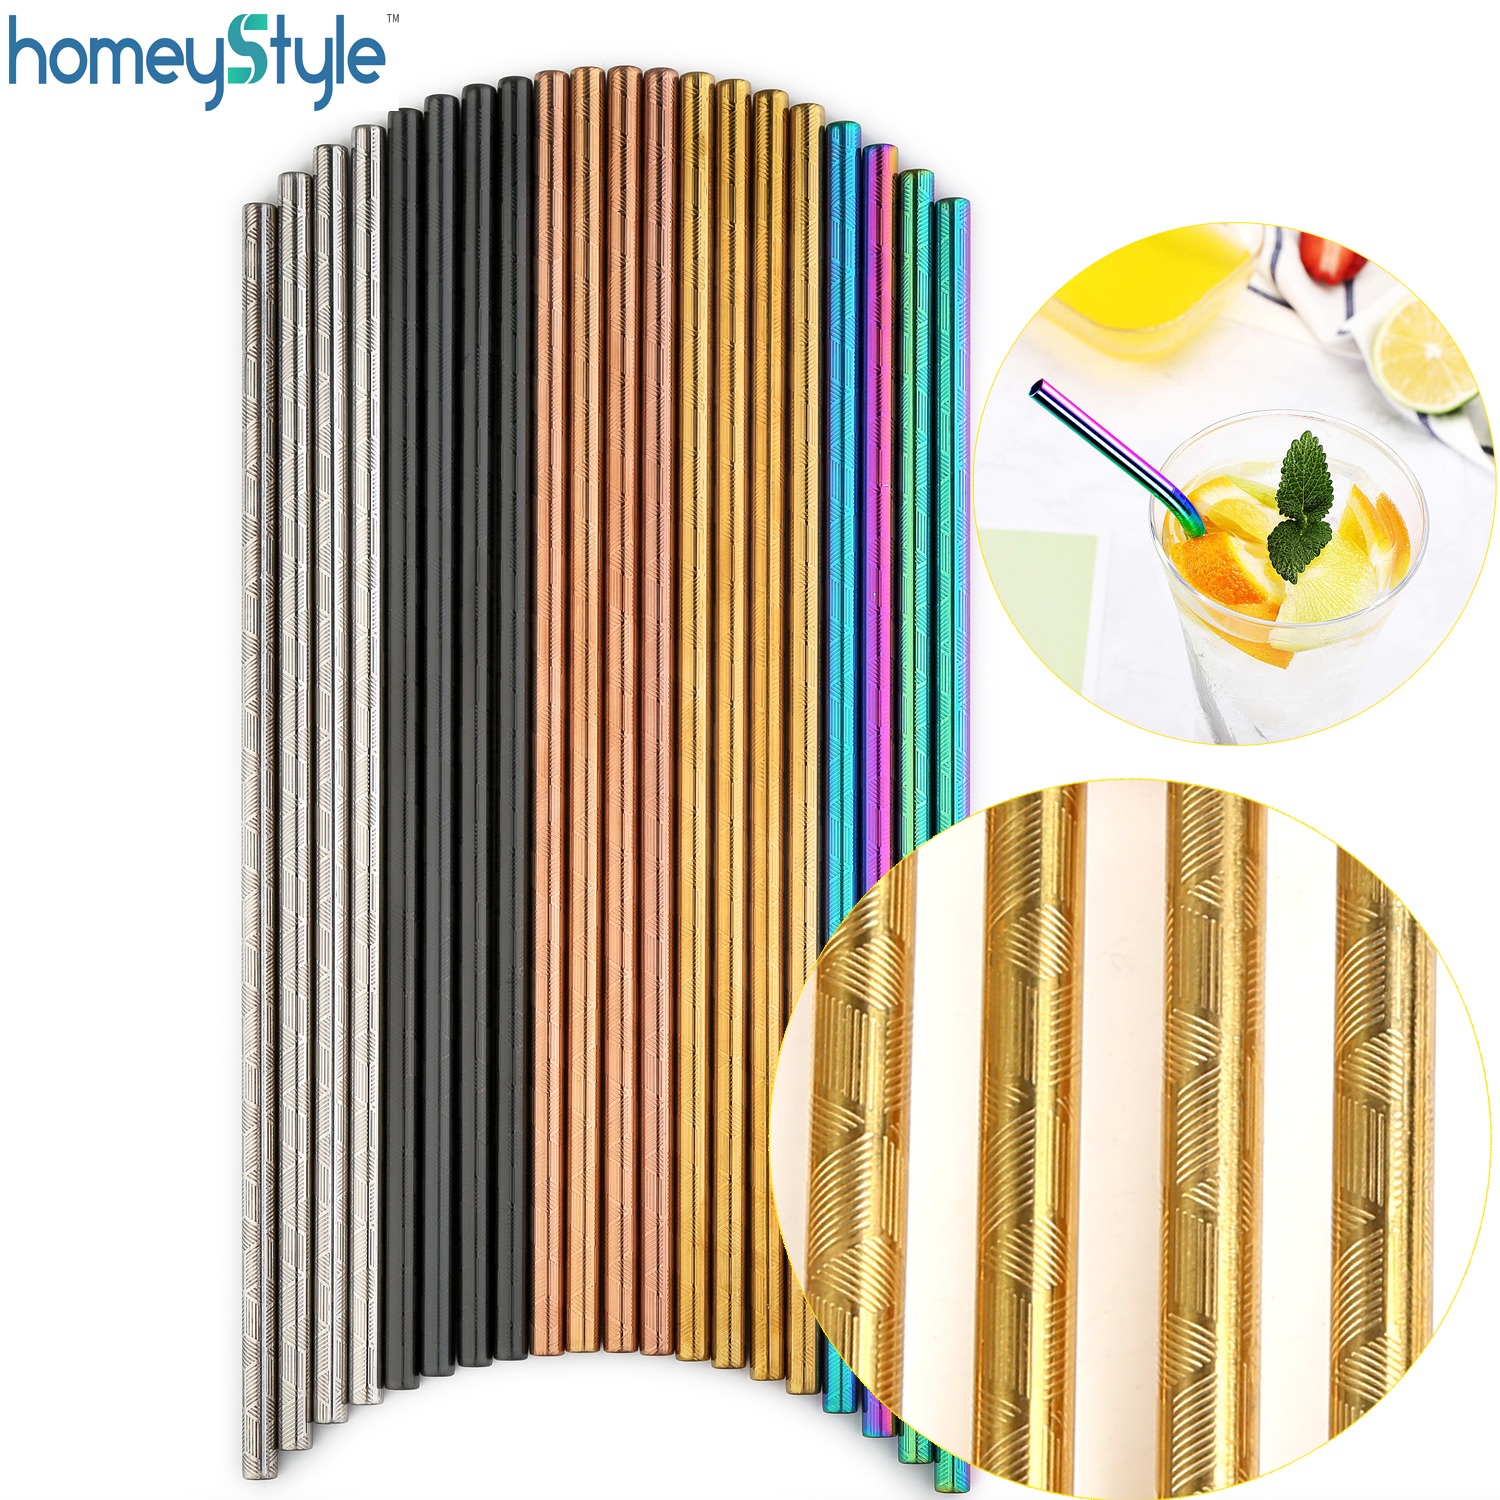 100 Pcs Patterned Wholesale Metal Straw Colorful Reusable Stainless Steel Straw E co Friendly Portable Drinking Tubes For 20/30-in Drinking Straws from Home & Garden    1